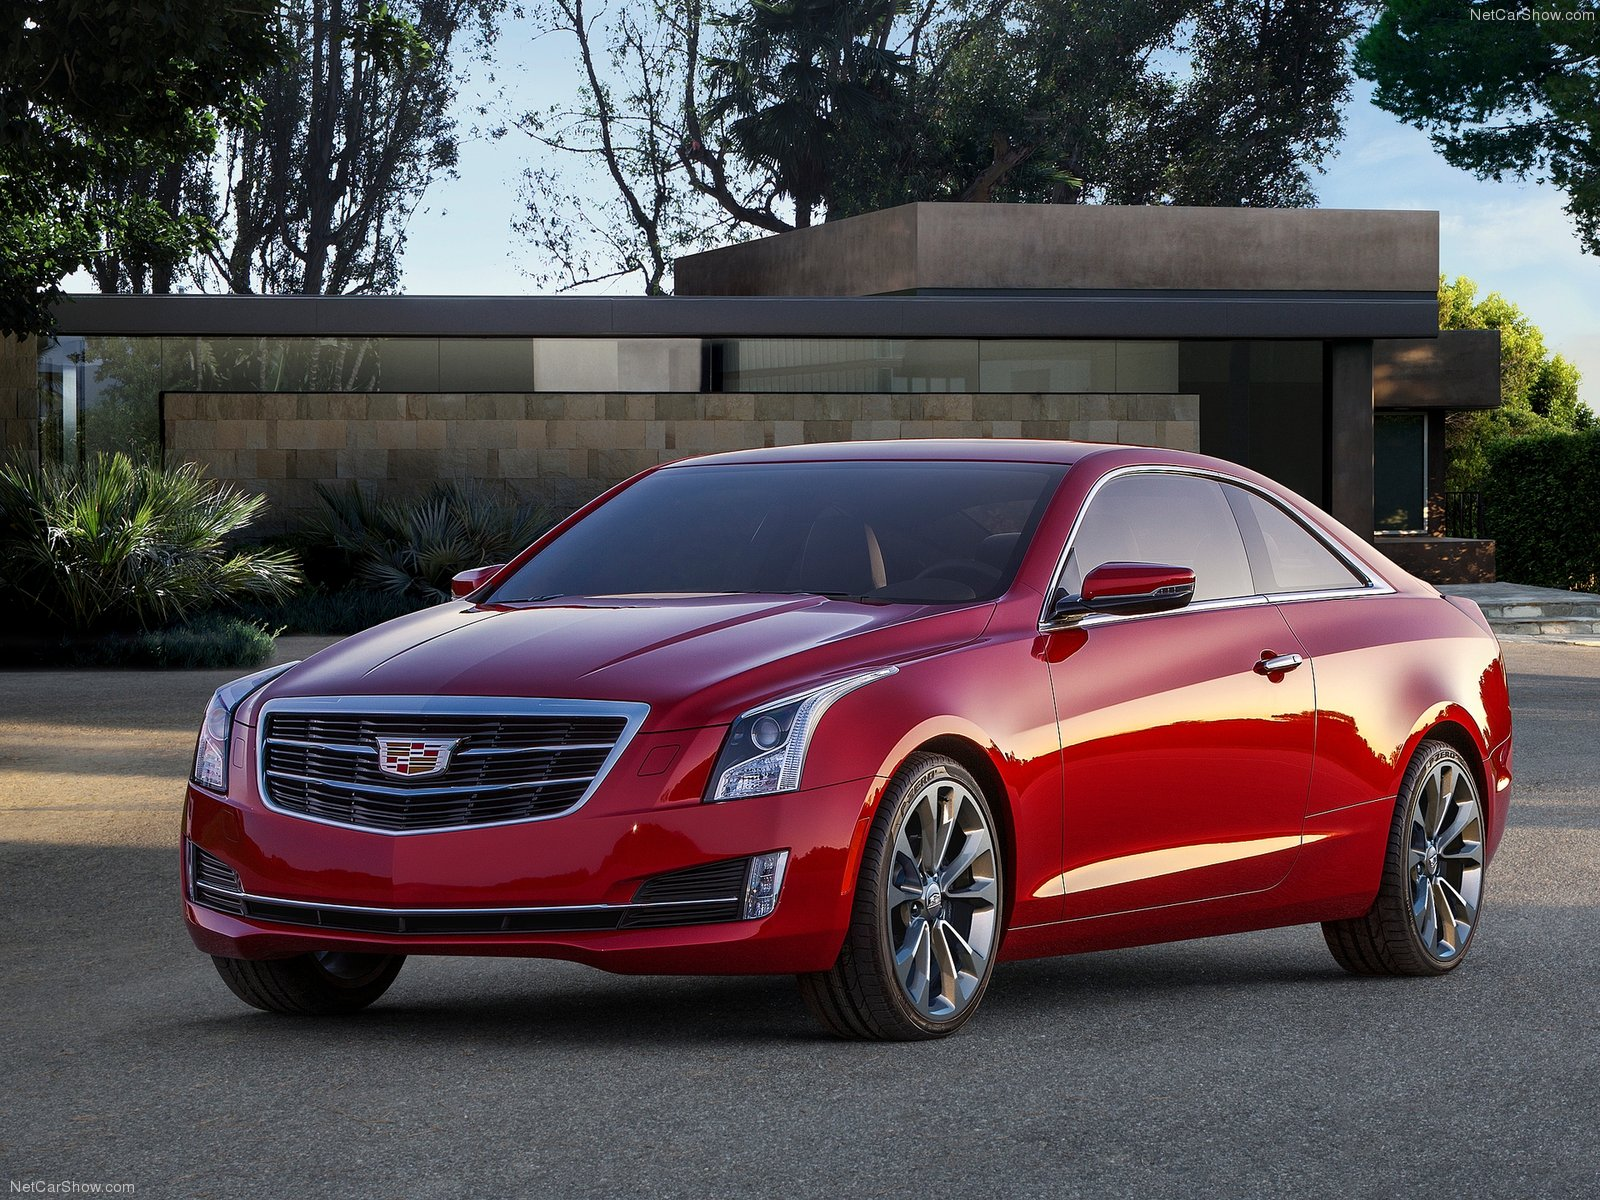 Cadillac ATS Coupe photo 106613